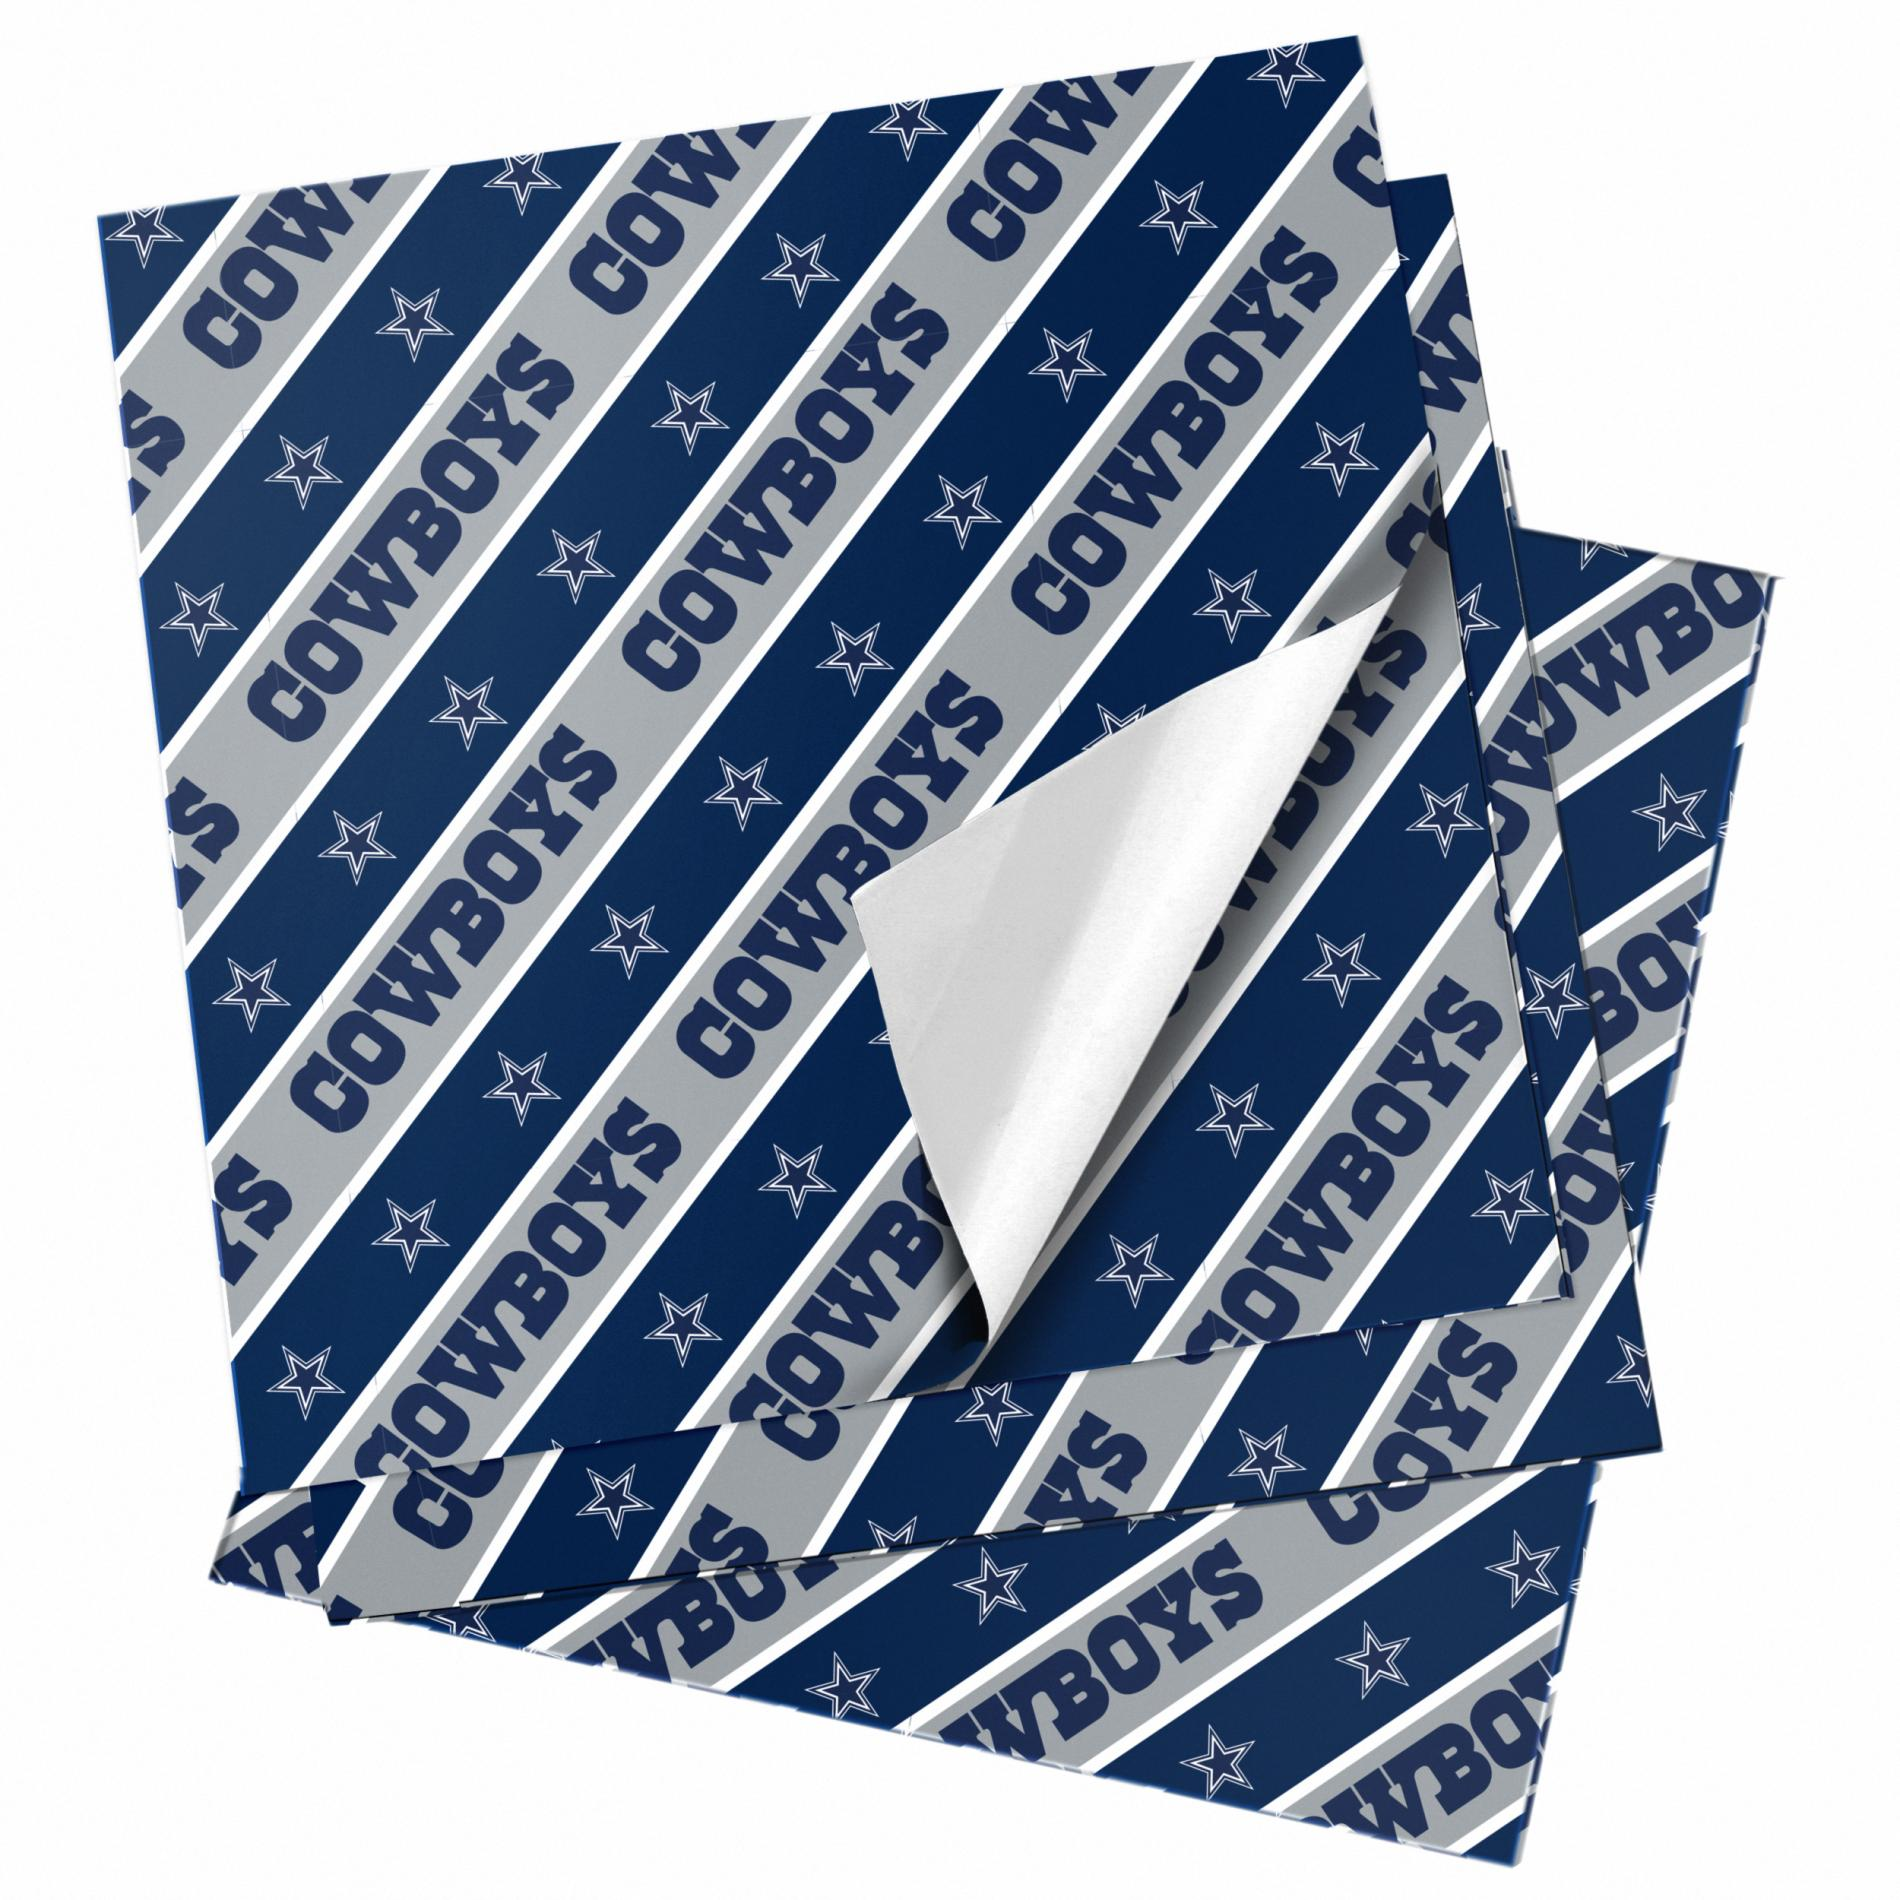 Wrapping paper gift wrapping supplies kmart